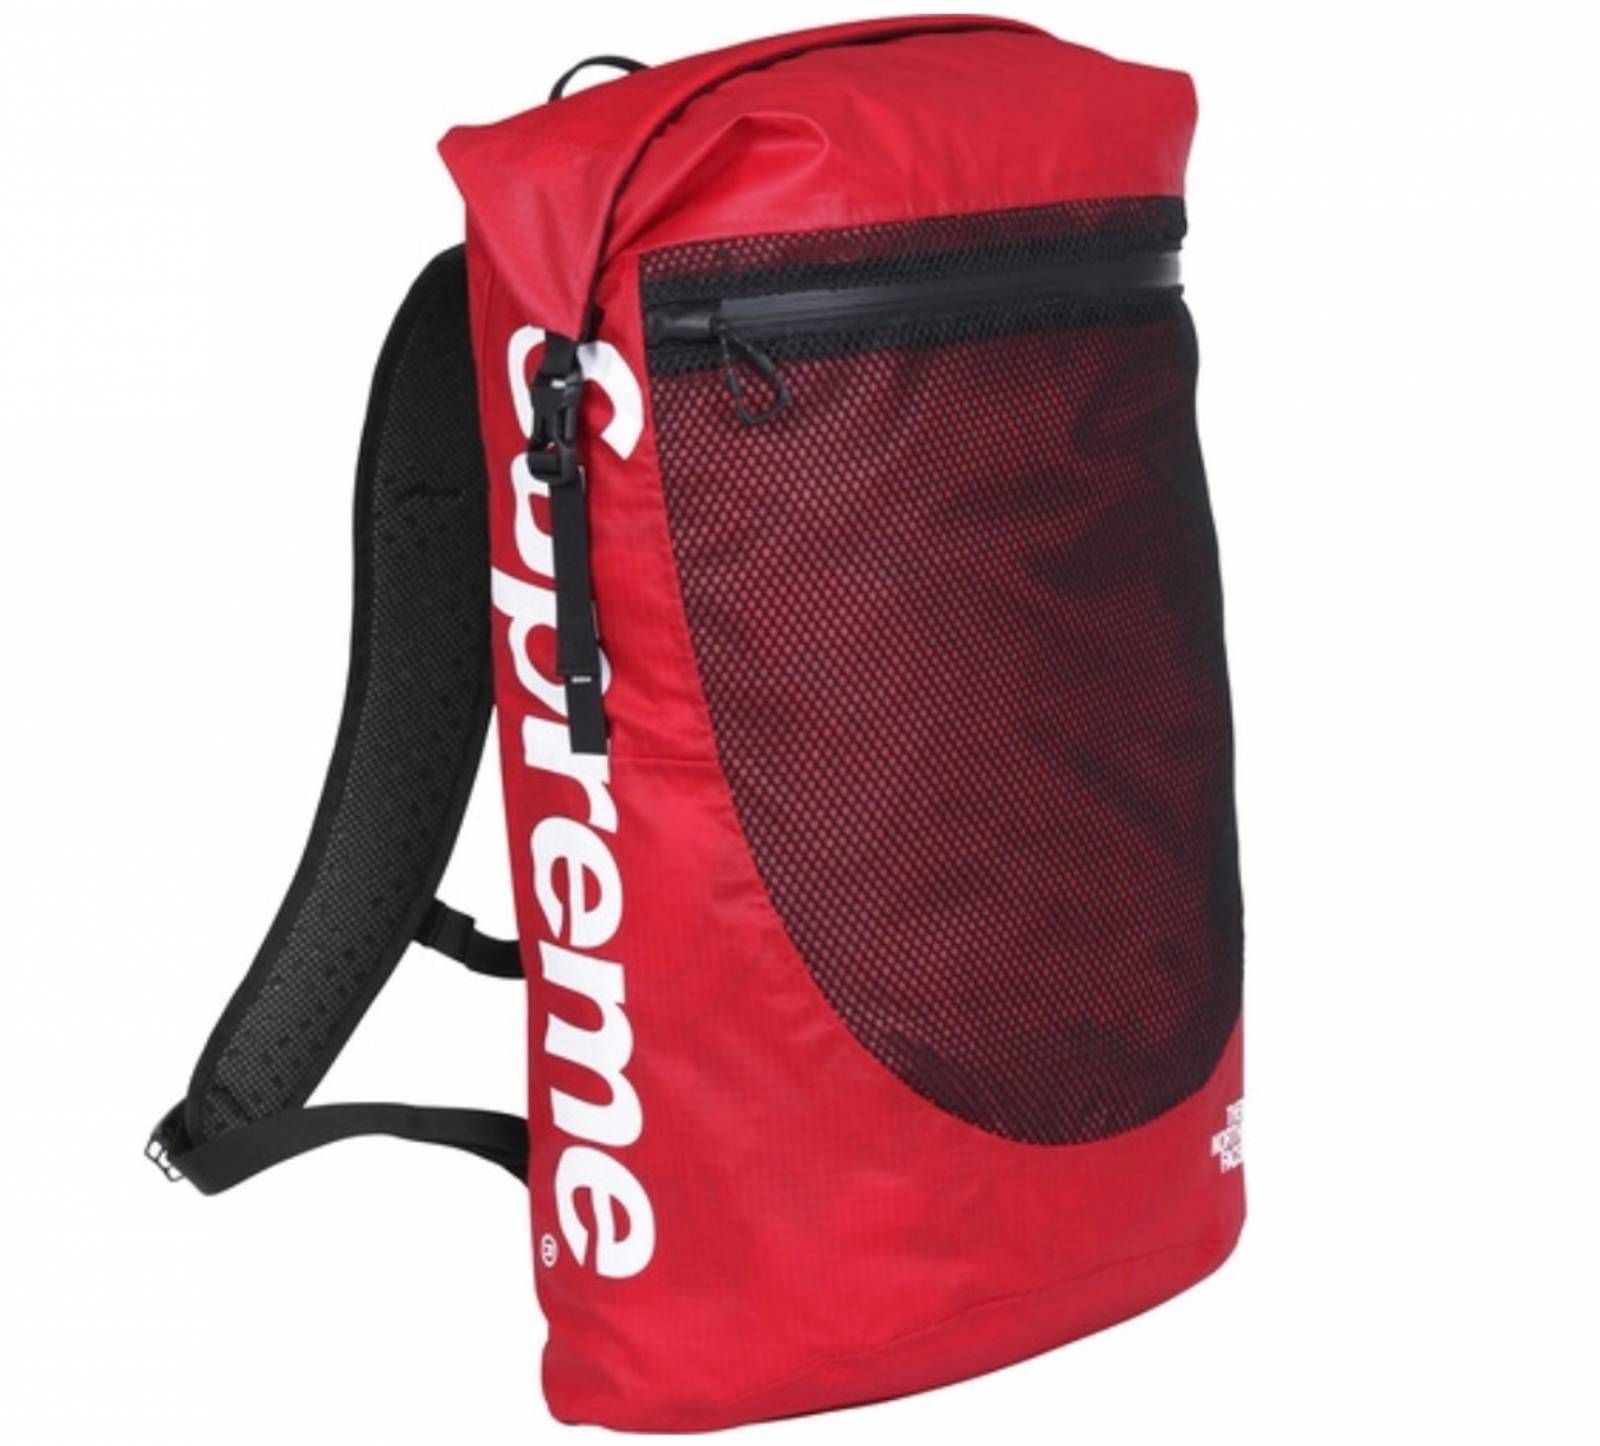 Supreme x The North Face Waterproof Backpack North face